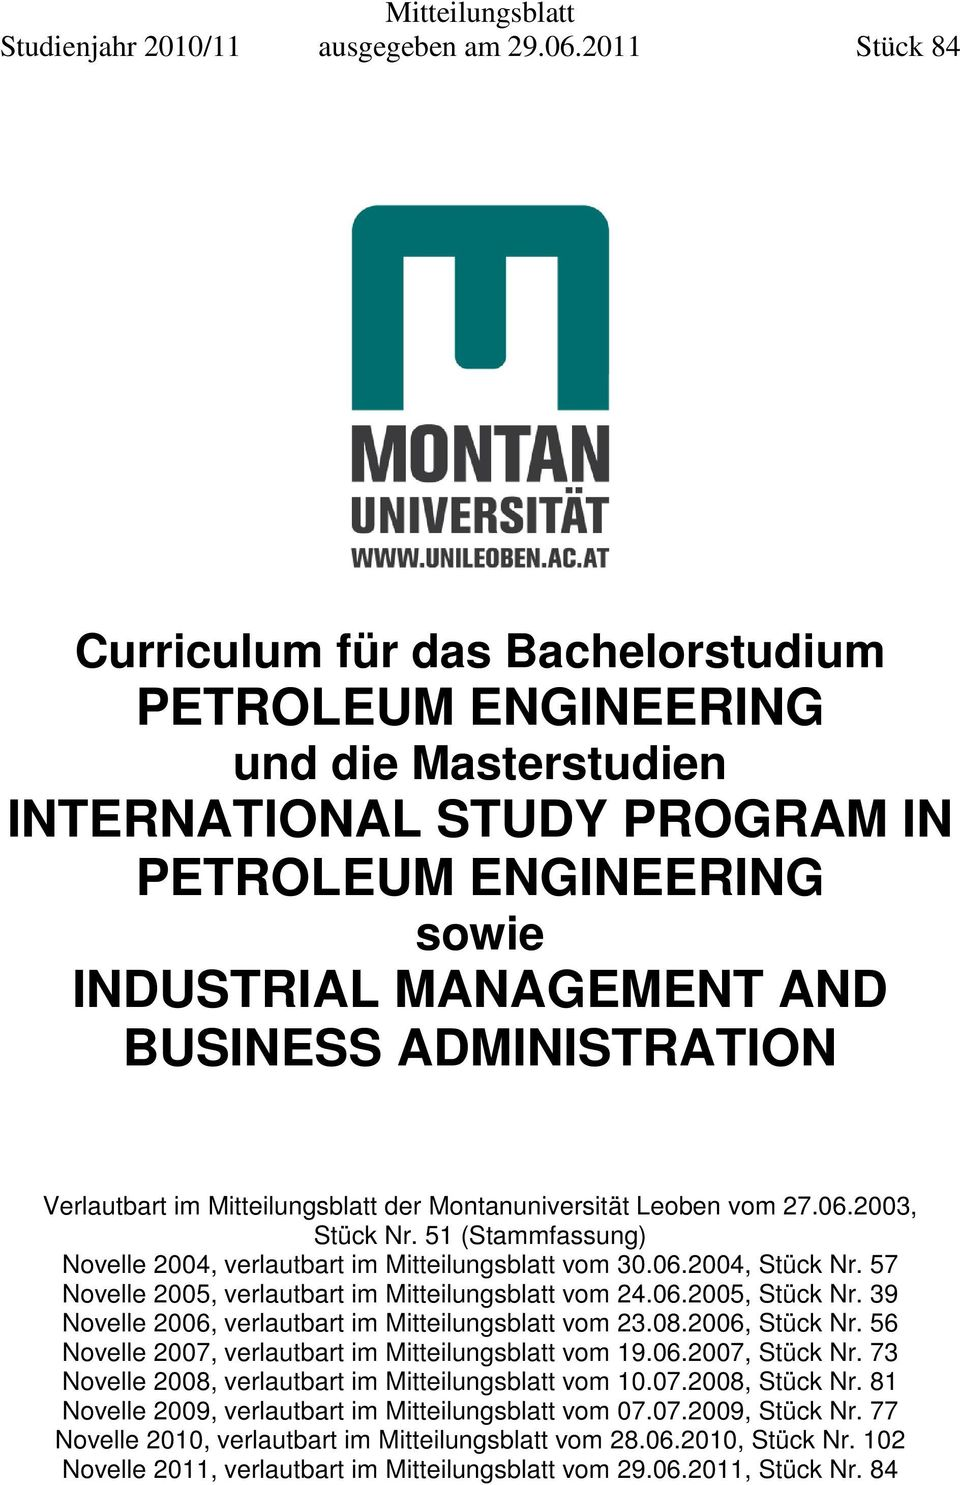 0 Stück 8 Curriculum für das Bachelorstudium PETROLEUM ENGINEERING und die Masterstudien INTERNATIONAL STUDY PROGRAM IN PETROLEUM ENGINEERING sowie INDUSTRIAL MANAGEMENT AND BUSINE ADMINISTRATION